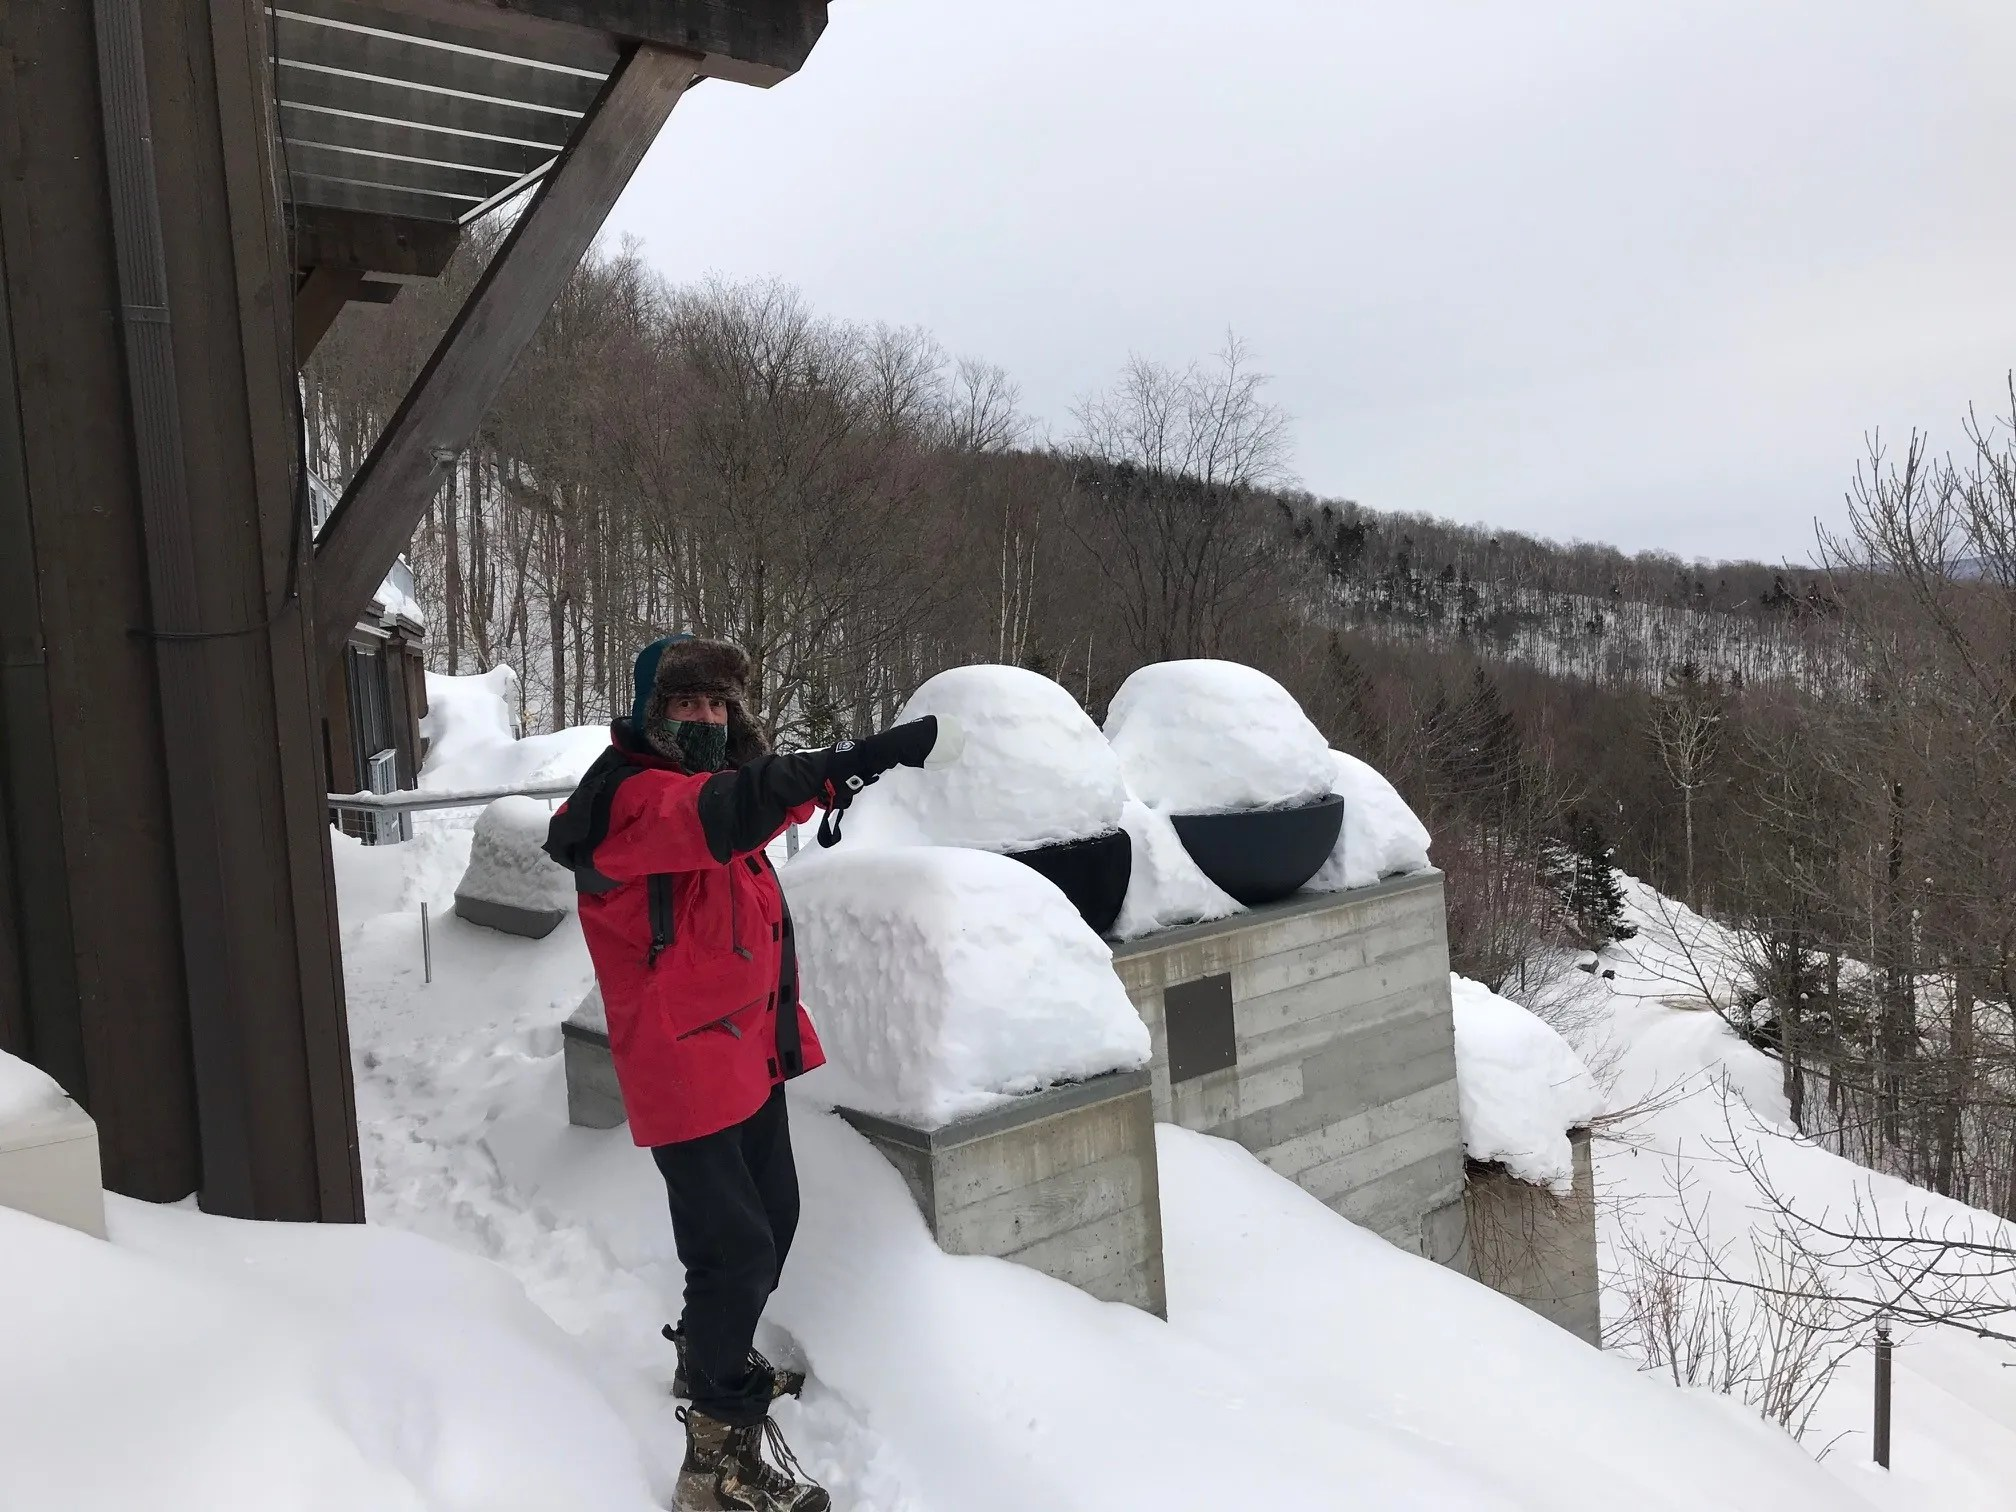 Mike Krancer shows another nearby house from his perch atop Bull Moose Ridge Road in Stowe, Vt. On February 18, 2021.